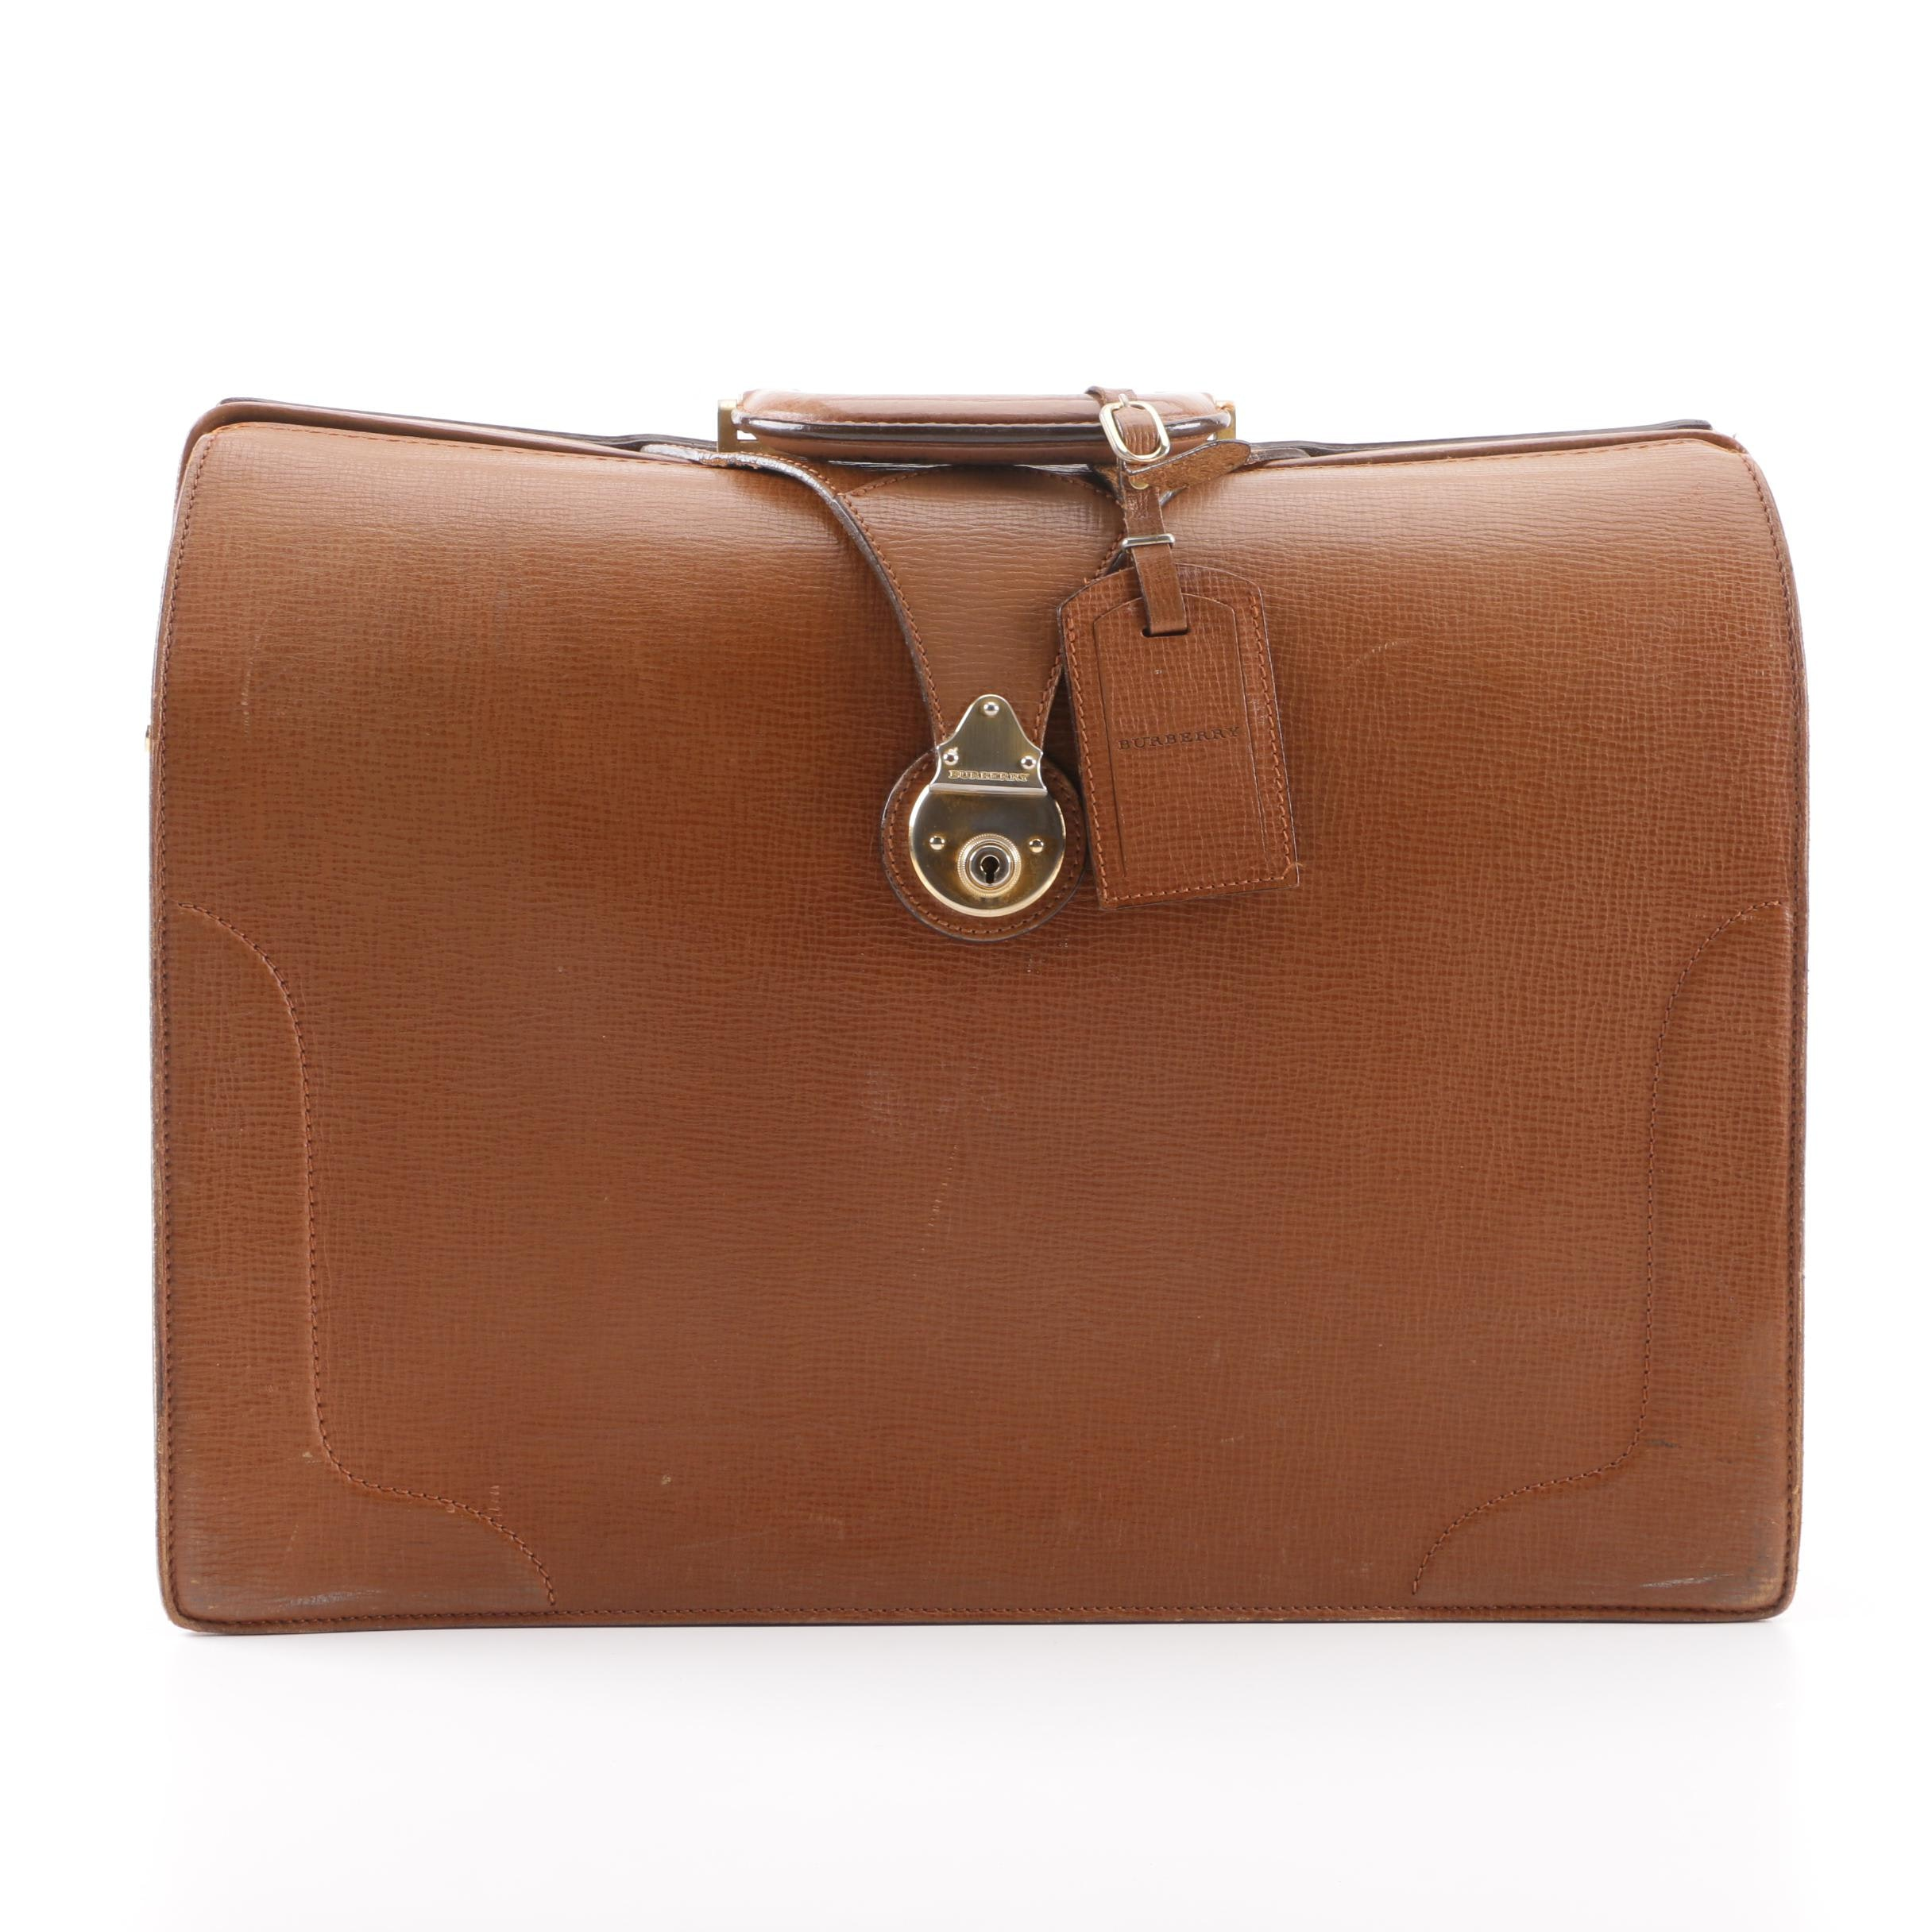 2000 Burberry London Brown Leather Doctor's Satchel Briefcase